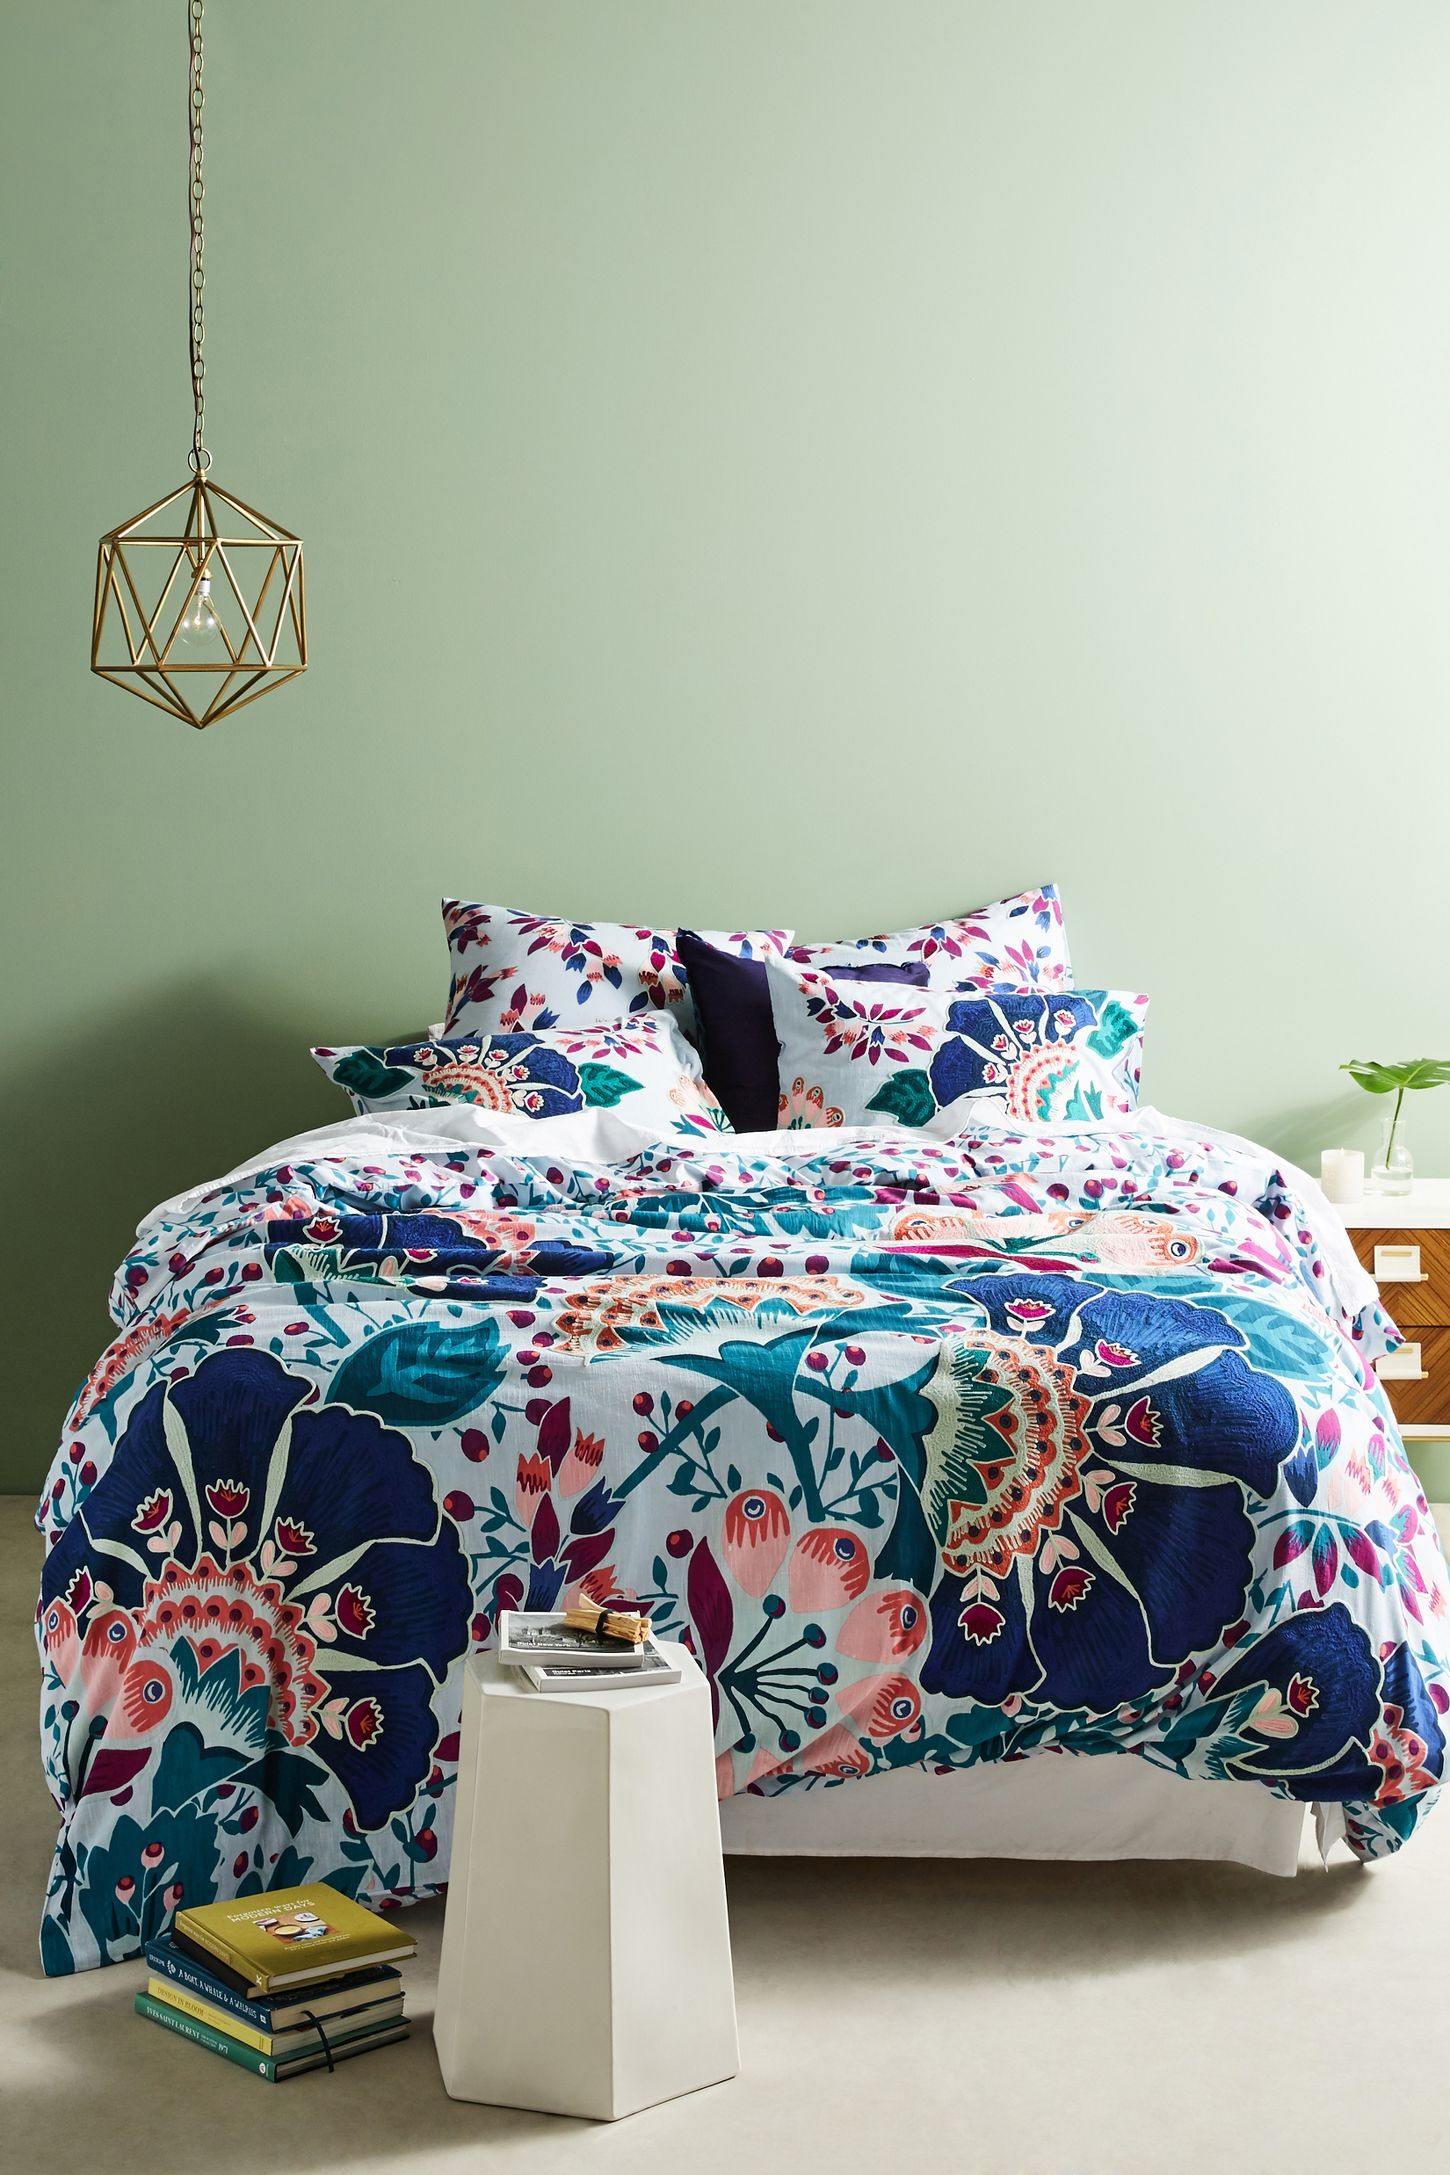 duvets boho bedding bed luxury comforter teens pattern style tribal duvet full sheets covers bohemian size for cute aztec